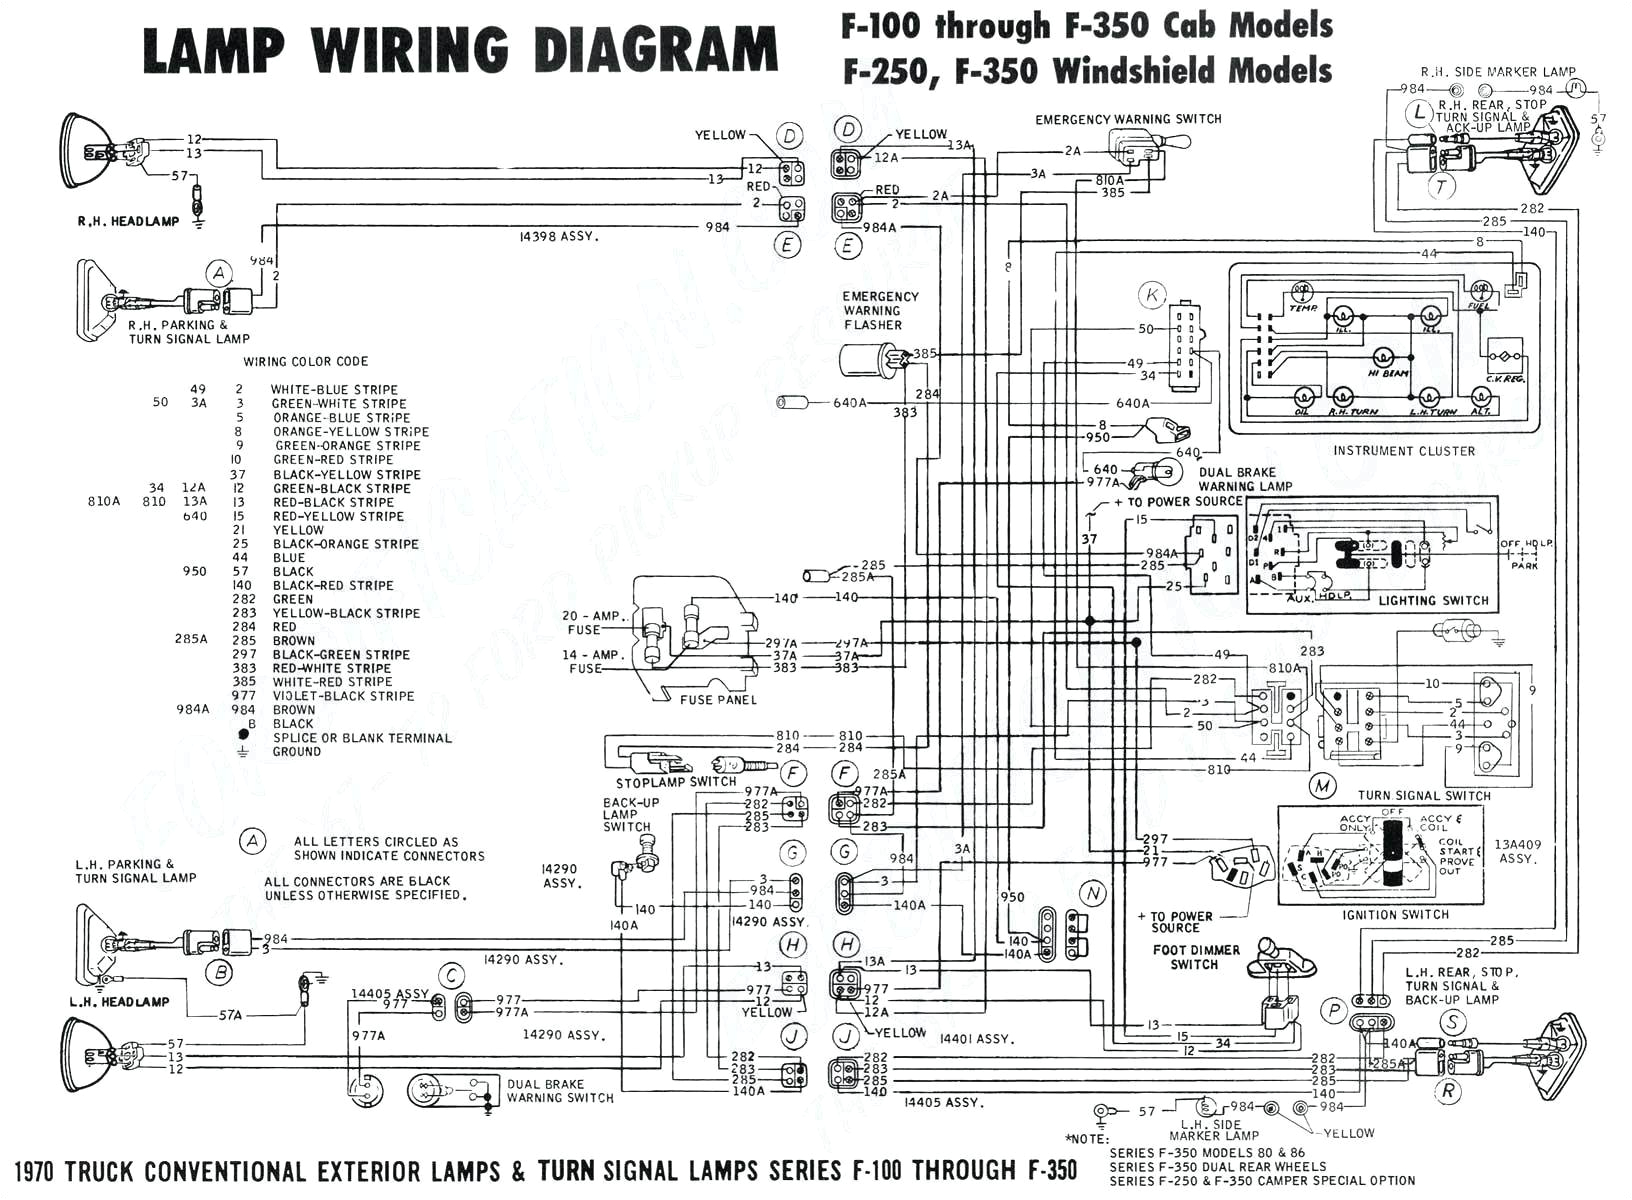 wiring a light fitting diagram wiring diagrams c2 ab myrons mopeds wiring diagram files of wiring a light fitting diagram jpg